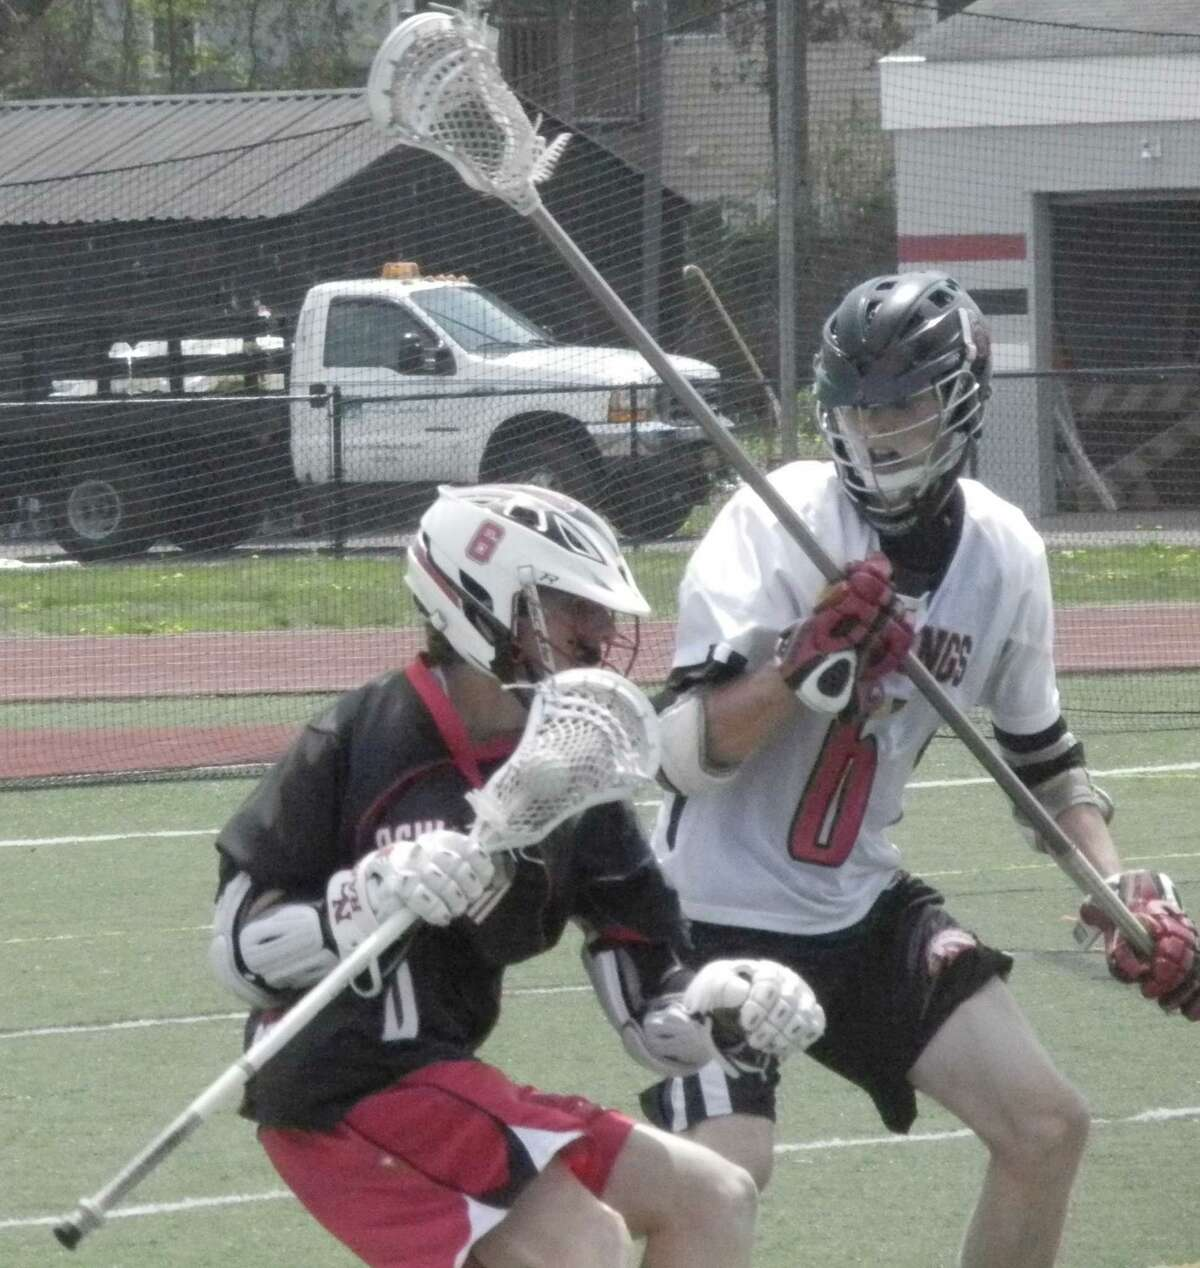 Fairfield Warde's Greg Adams, right, challenges New Canaan's Michael Kraus in an FCIAC boys lacrosse game on Saturday, May 10 at Tetreau/Davis Field in Fairfield. The visiting Rams, in black, defeated the Mustangs 12-4. Kraus scored two goals.